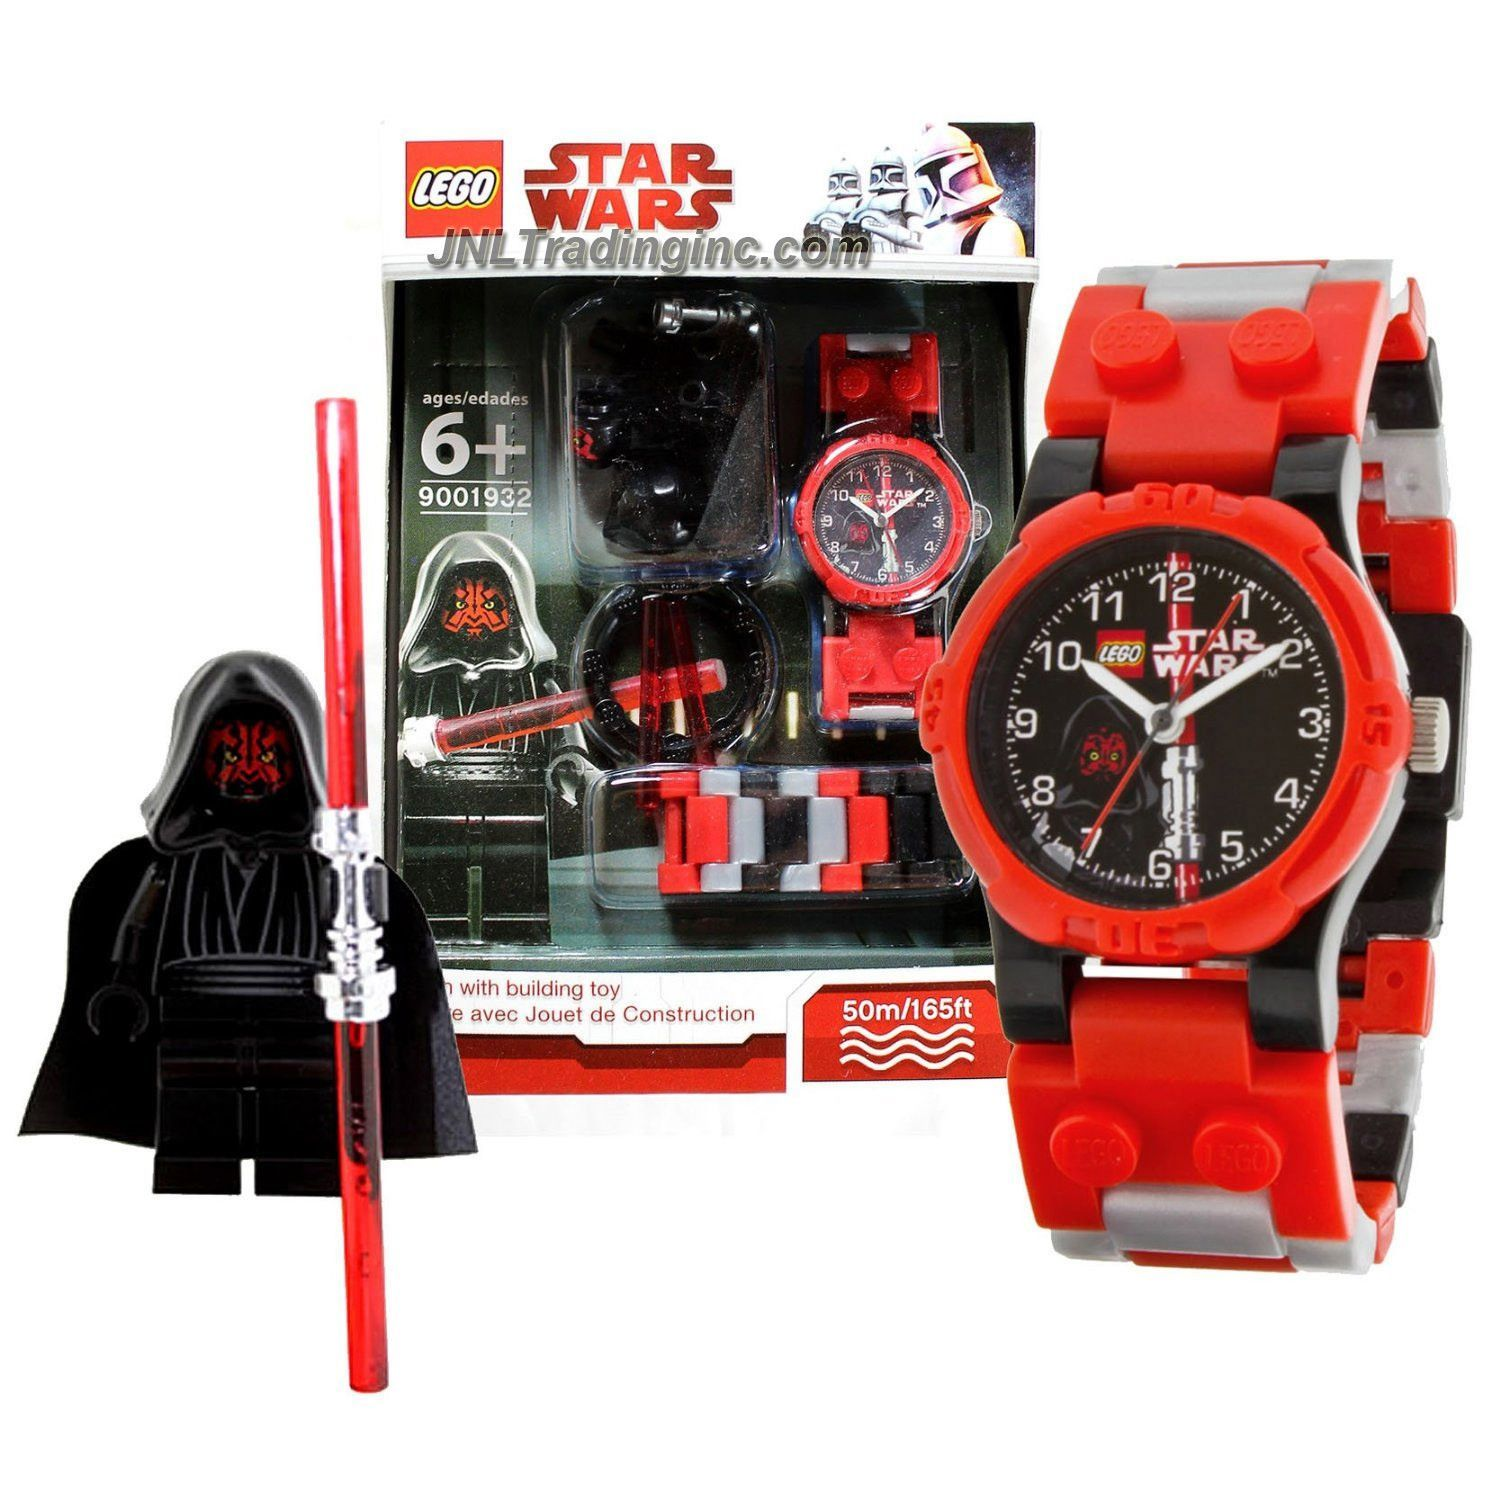 Lego Star Wars Series Watch Set 9001932 Darth Maul Watch Plus Darth Maul Minifigure With Red Double Lightsaber Water Resistant 50m 165ft Lego Star Wars Lego Darth Maul